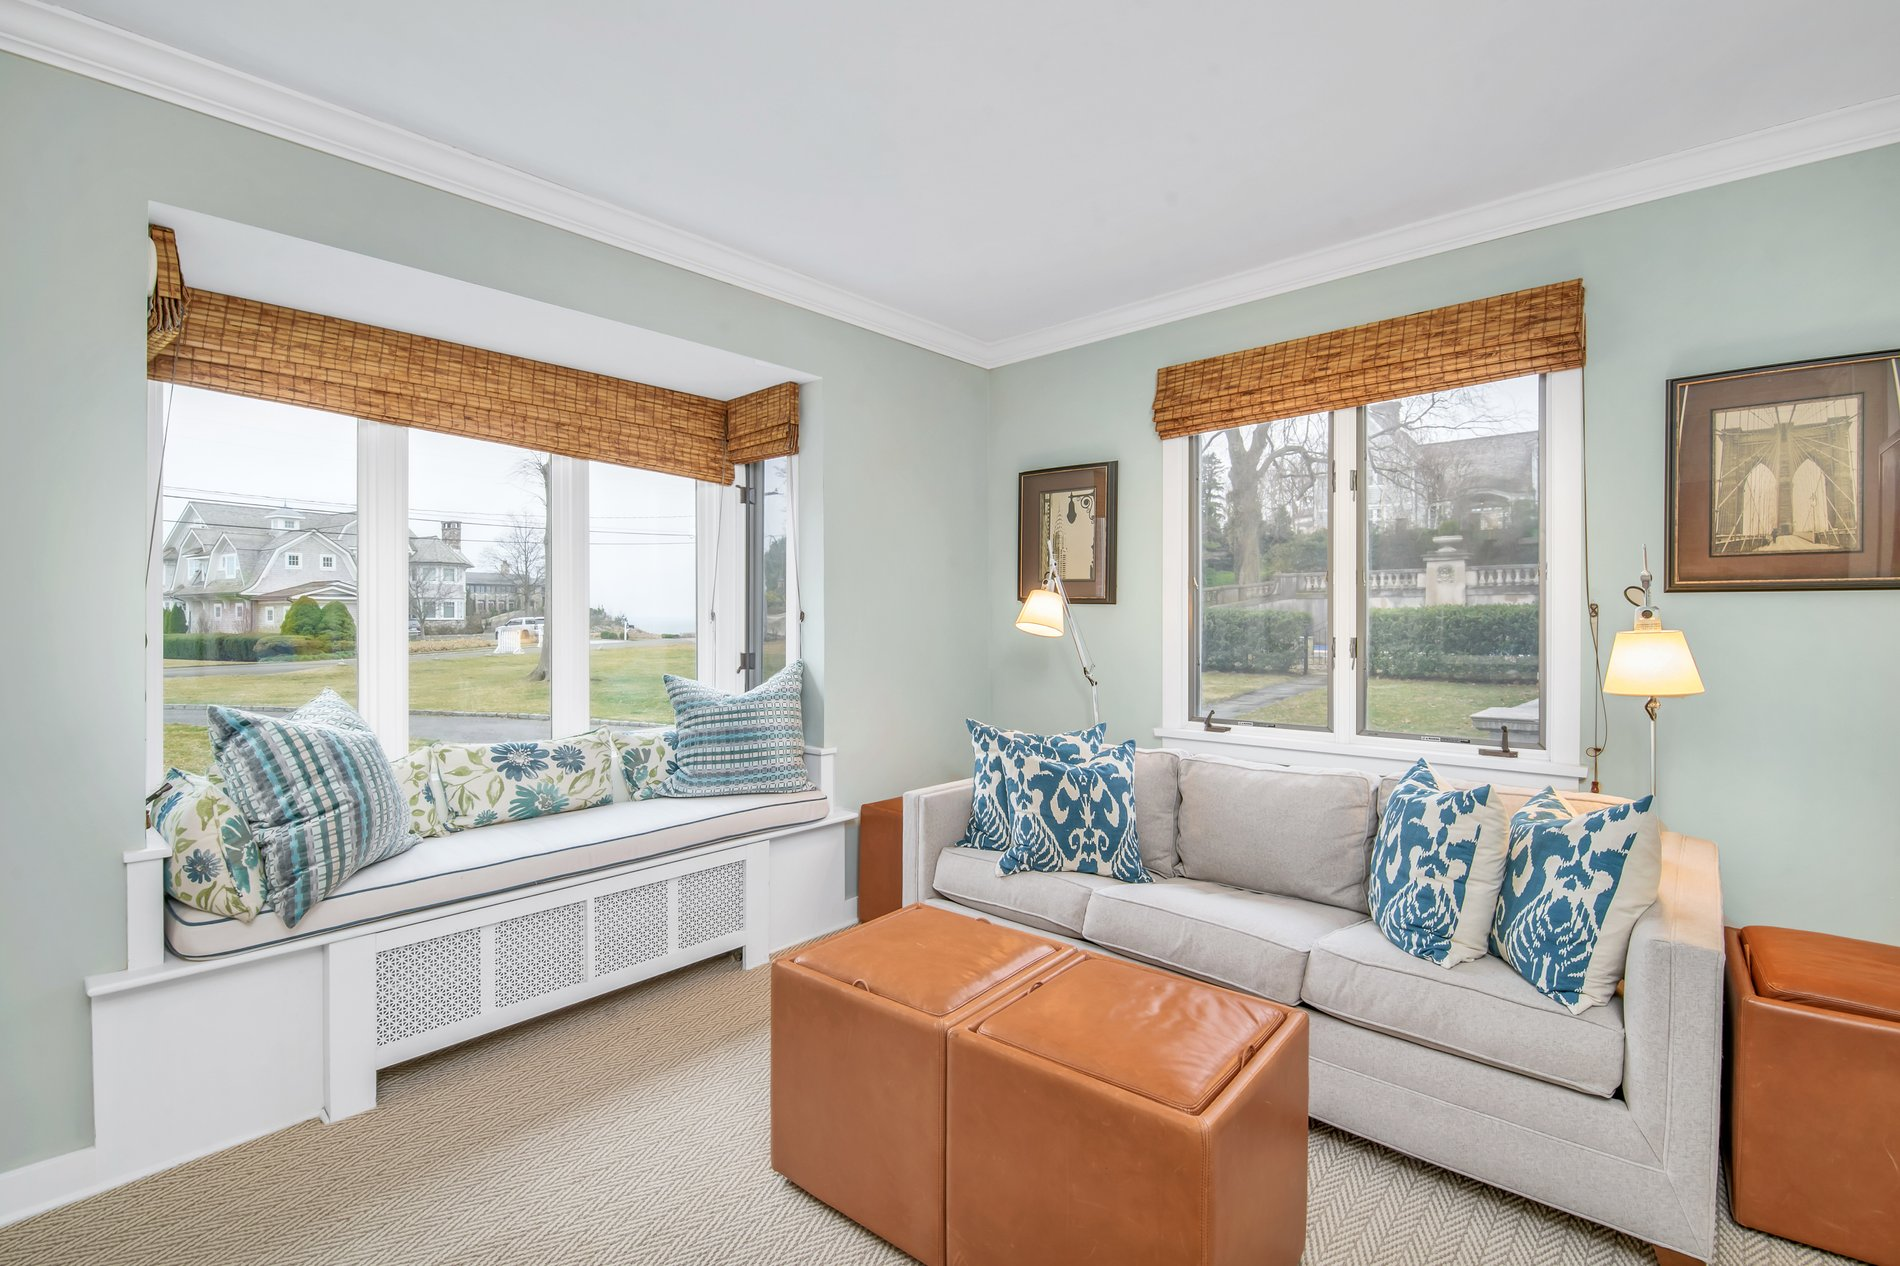 Living room with a window seat built above a radiator. cushion & pillows match the sofa.